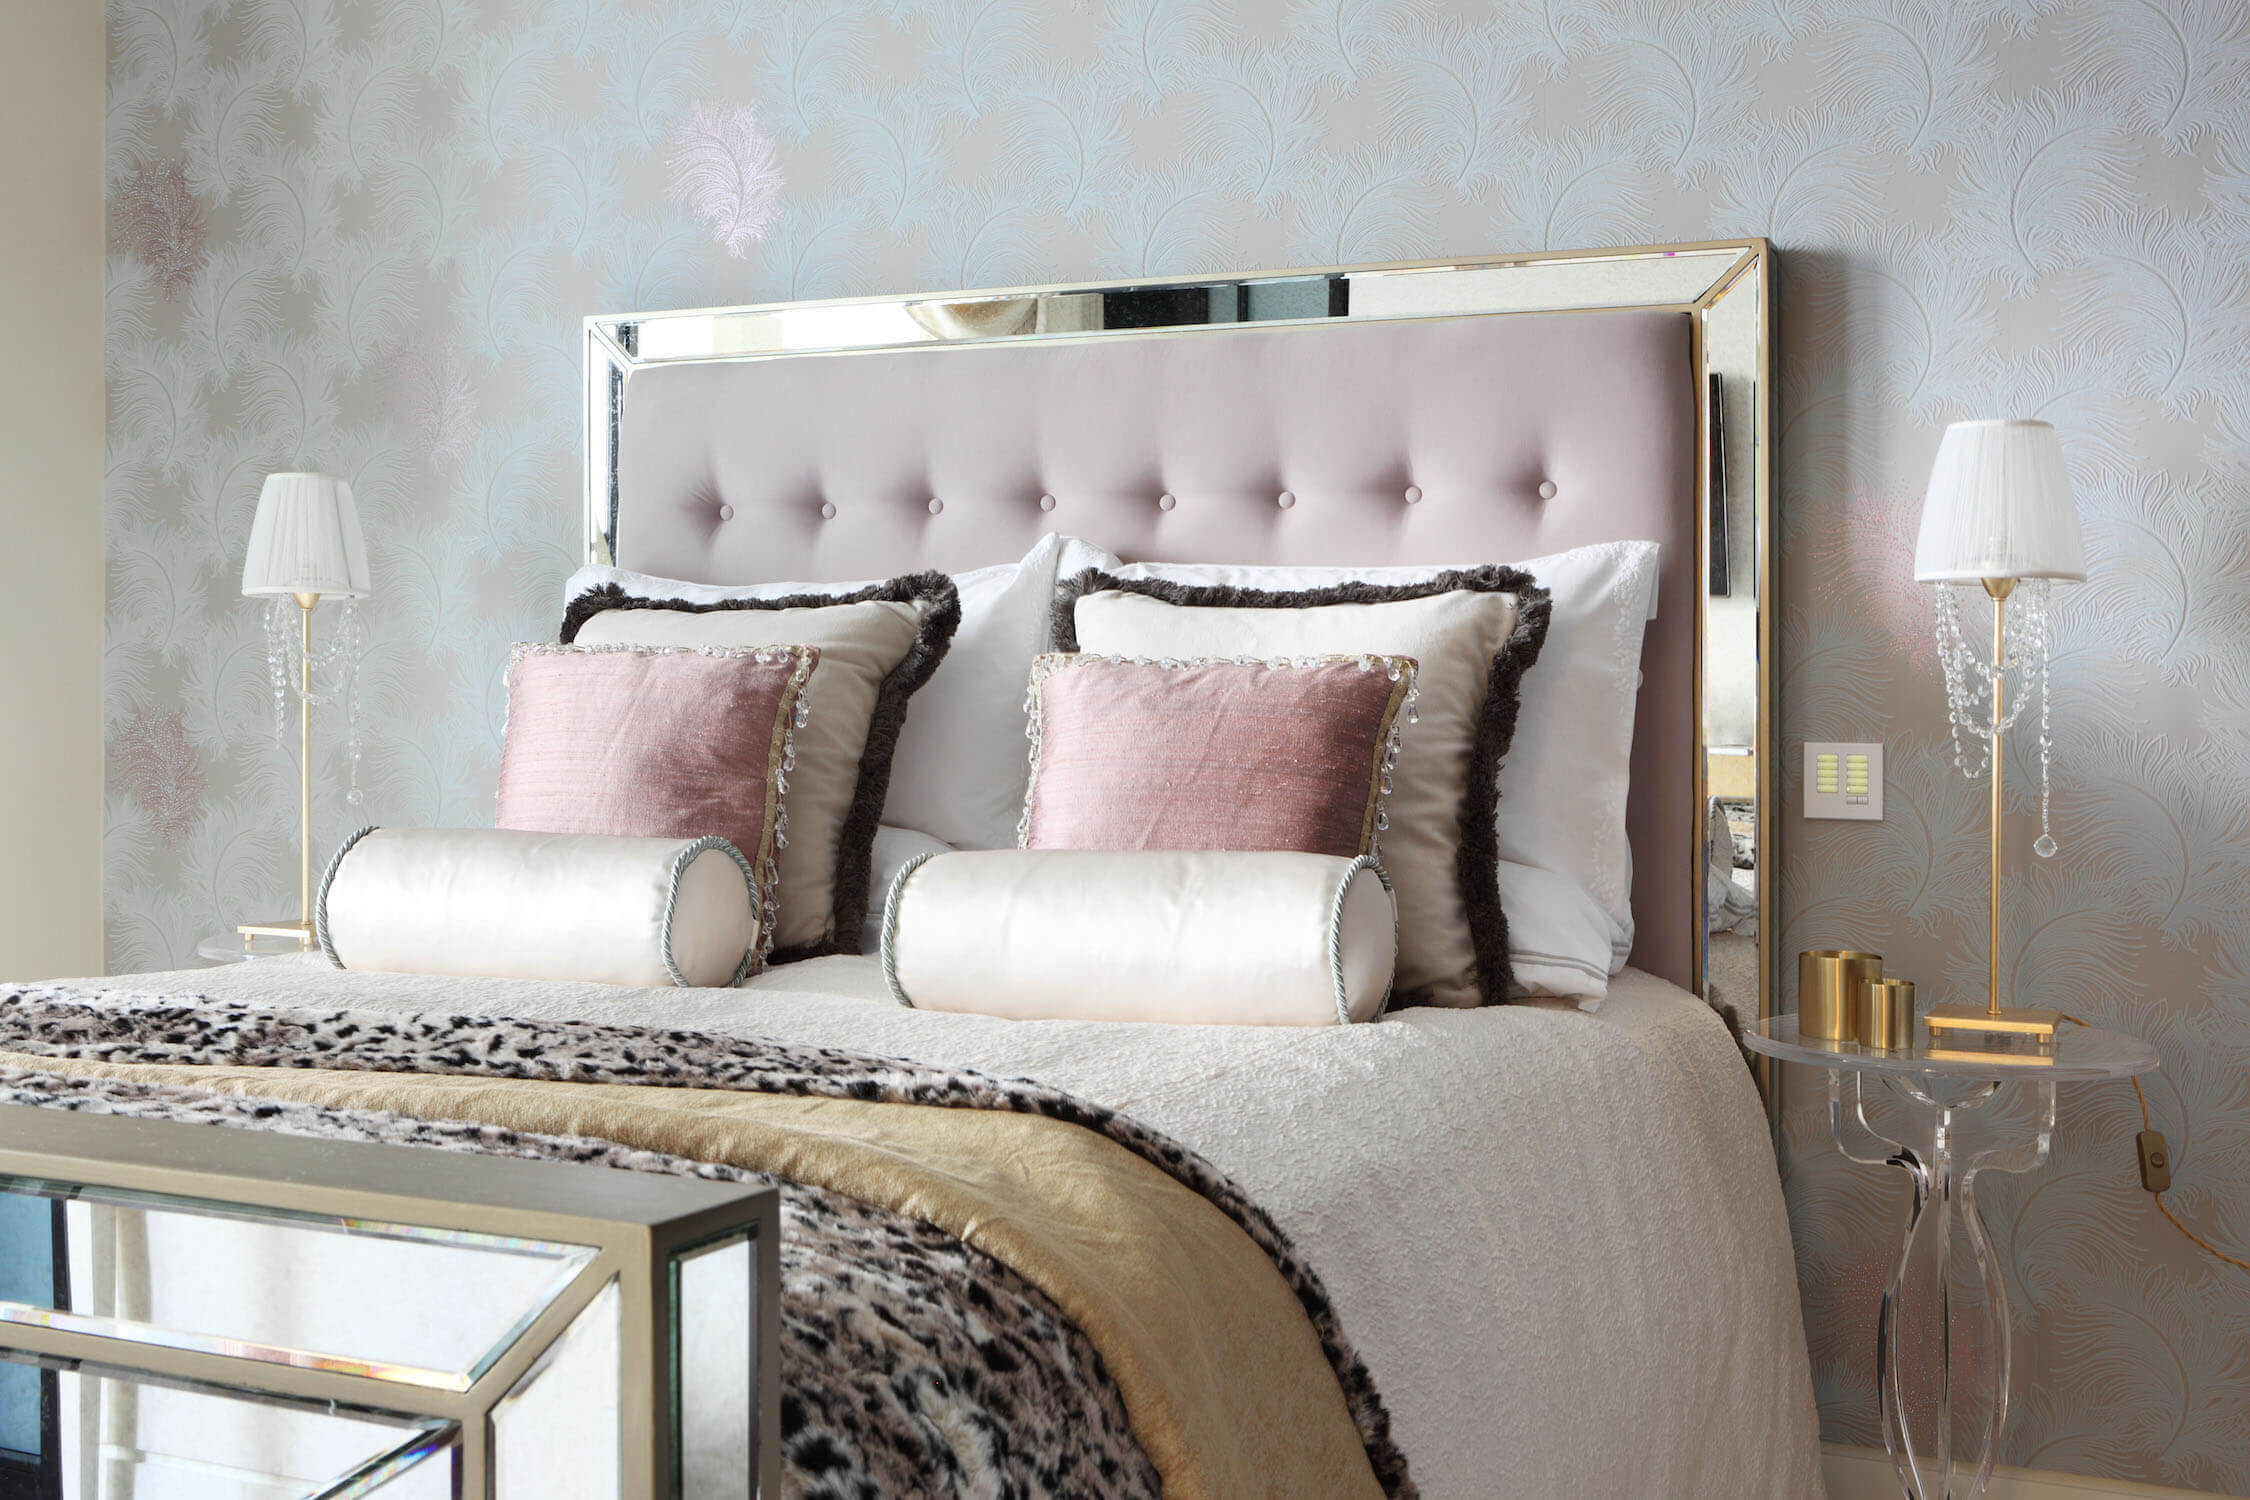 This light, feminine bedroom is enhanced by a soft colour palette and a discreet flock wallpaper with Swarovski elements that reflects light throughout the room.